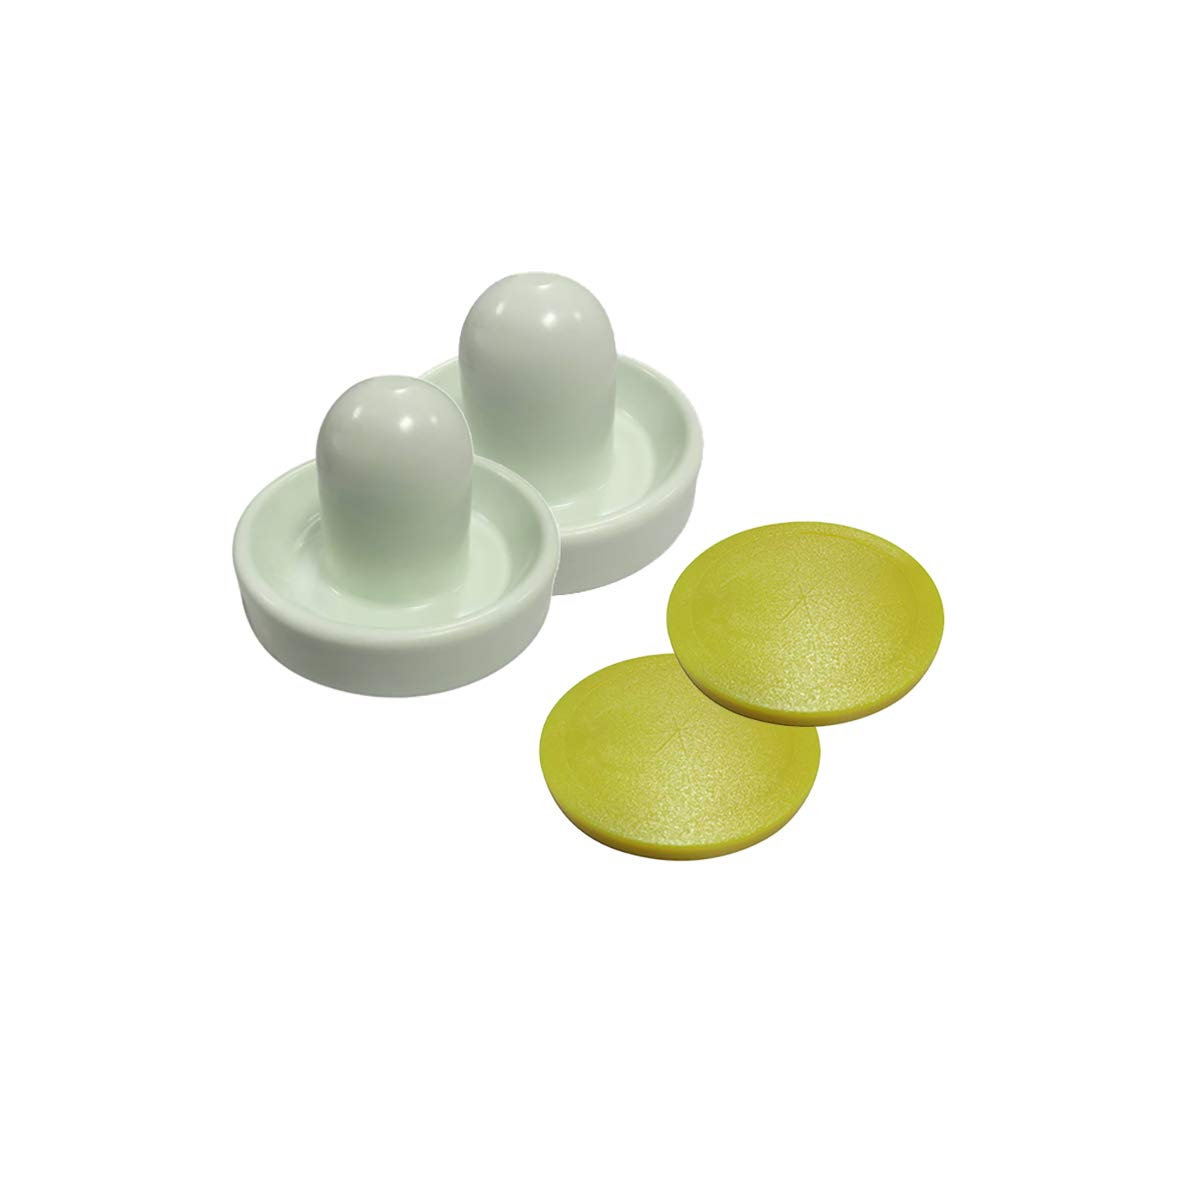 Shelti Gold Standard Kit of (2) Mallets and (2) Yellow Air Hockey Pucks by Gold Standard Games